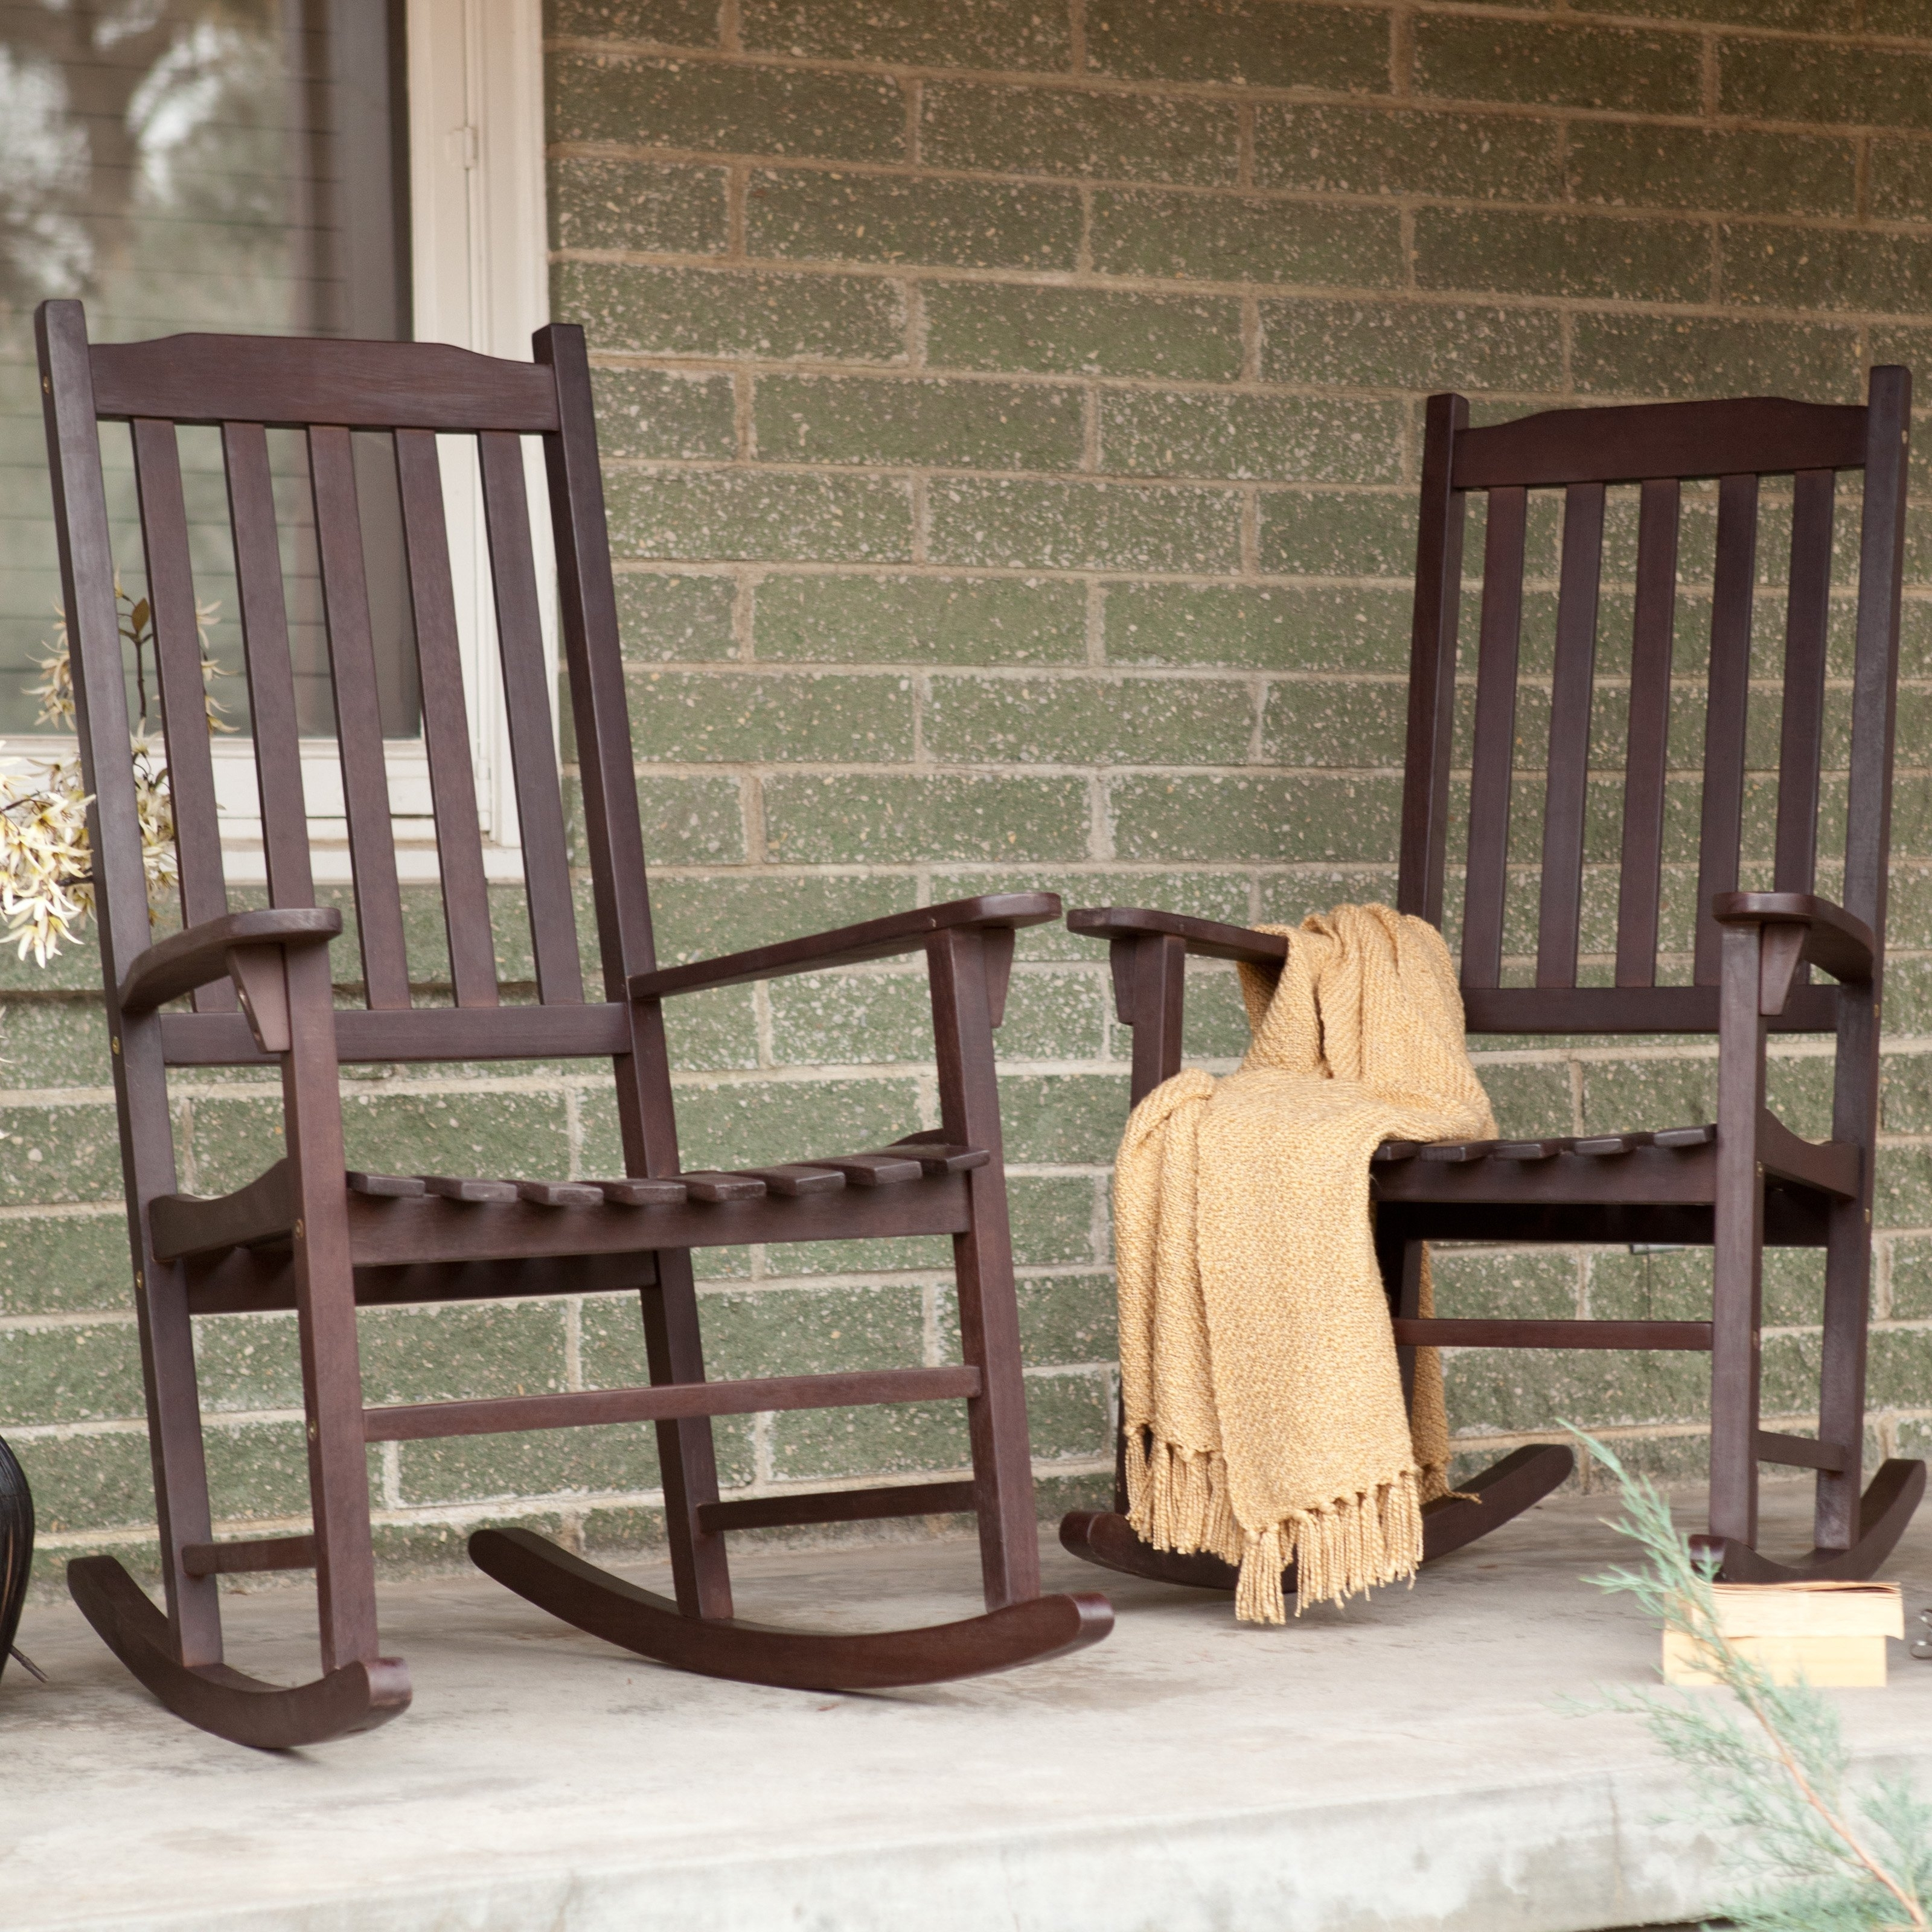 How To Choose Comfortable Outdoor Rocking Chairs – Yonohomedesign Intended For Latest Outdoor Rocking Chairs (View 10 of 15)